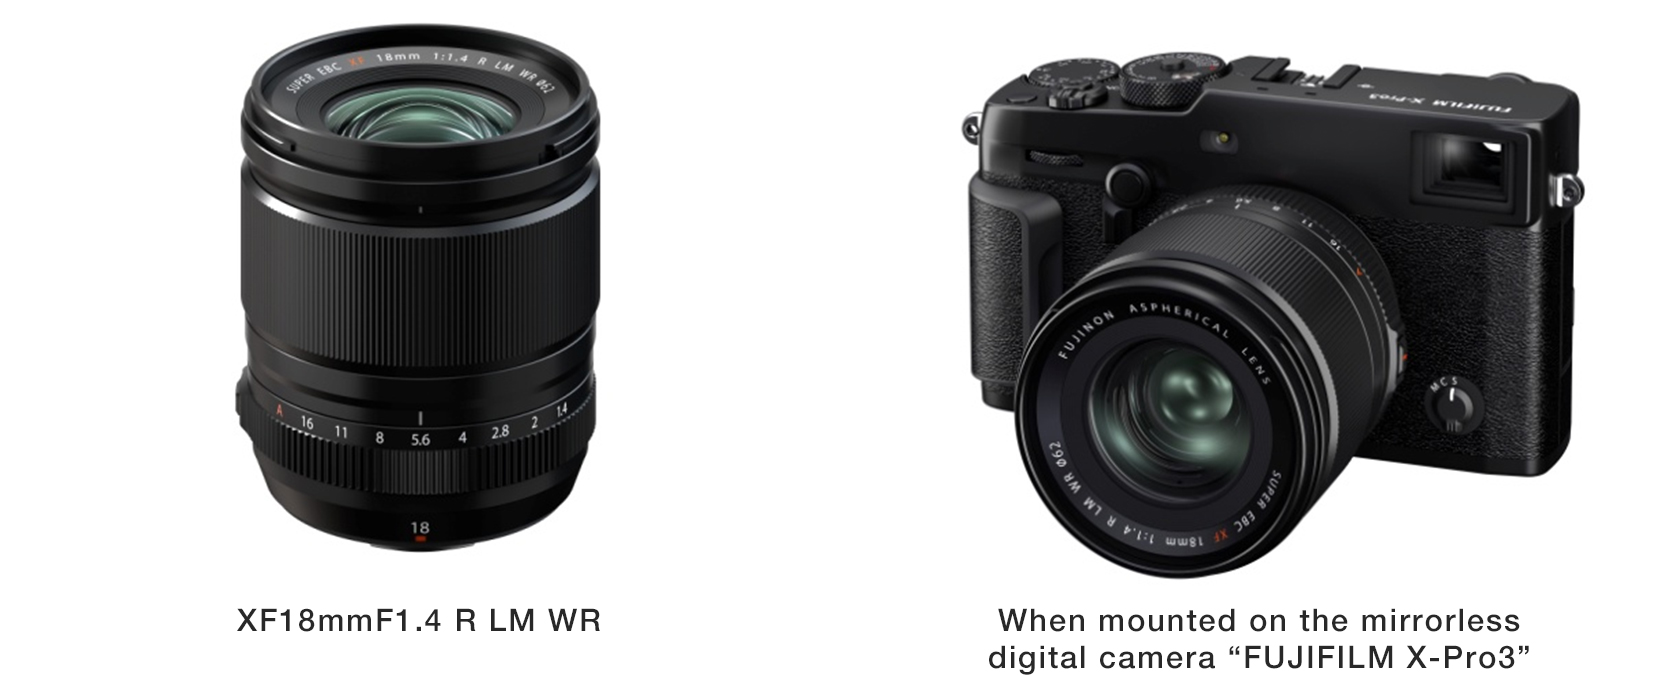 "[Image]XF18mmF1.4 R LM WR / When mounted on the mirrorless digital camera ""FUJIFILM X-Pro3"""